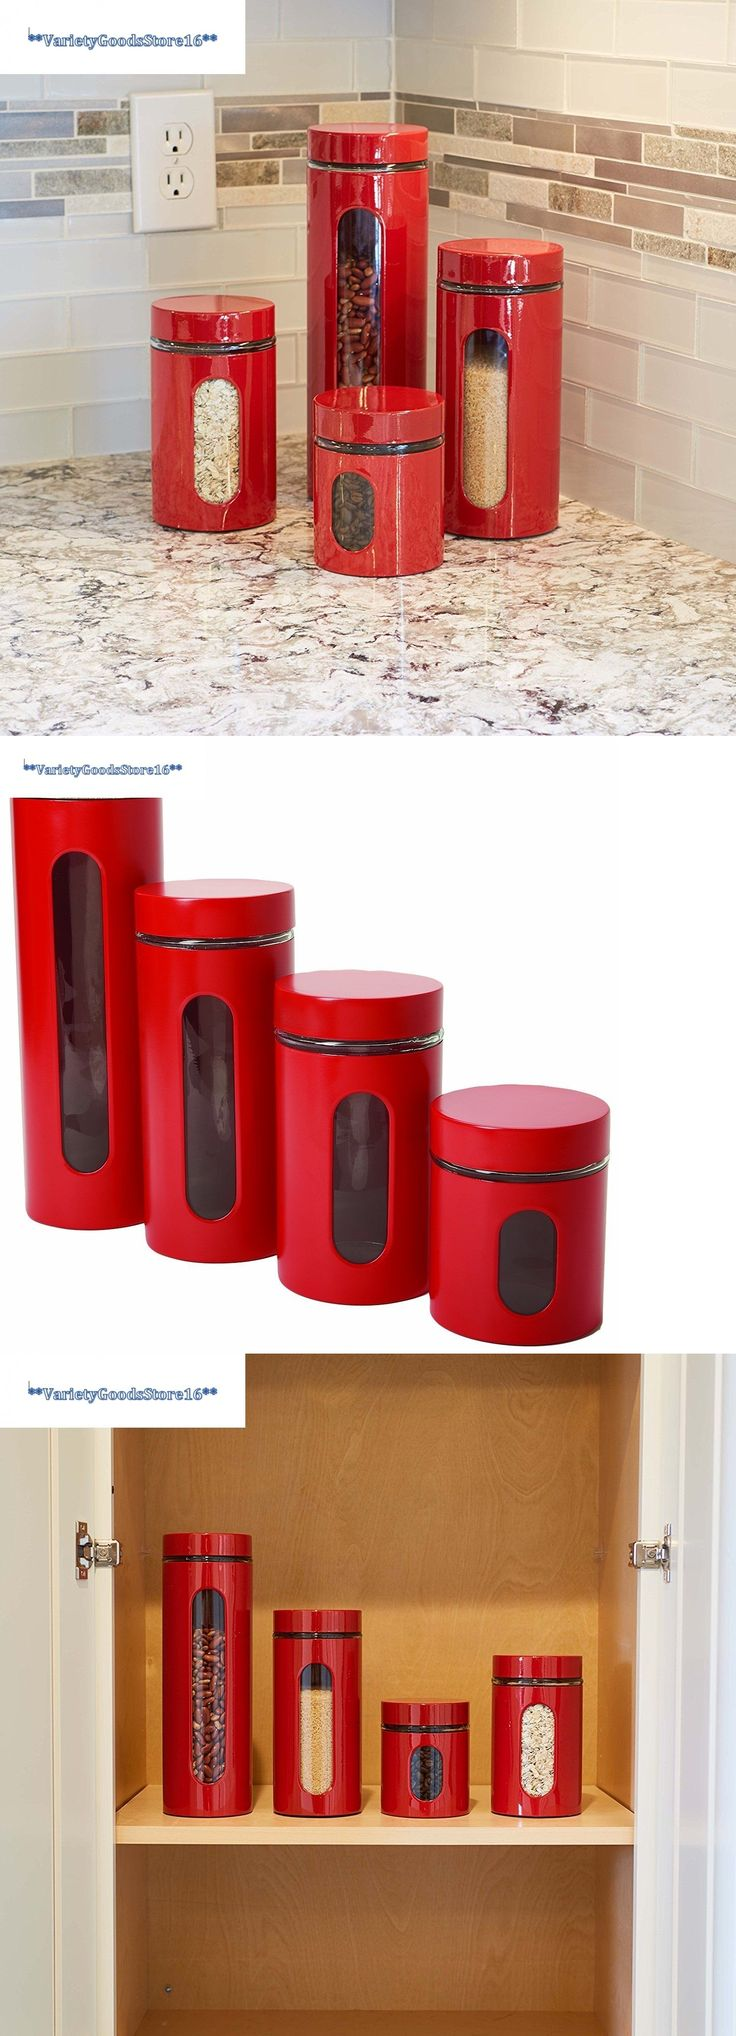 Canisters and Jars 20654: Red Canister Set 4 Pc Kitchen Flour Sugar Coffee Tea Window Containers Gift New -> BUY IT NOW ONLY: $36.28 on eBay!